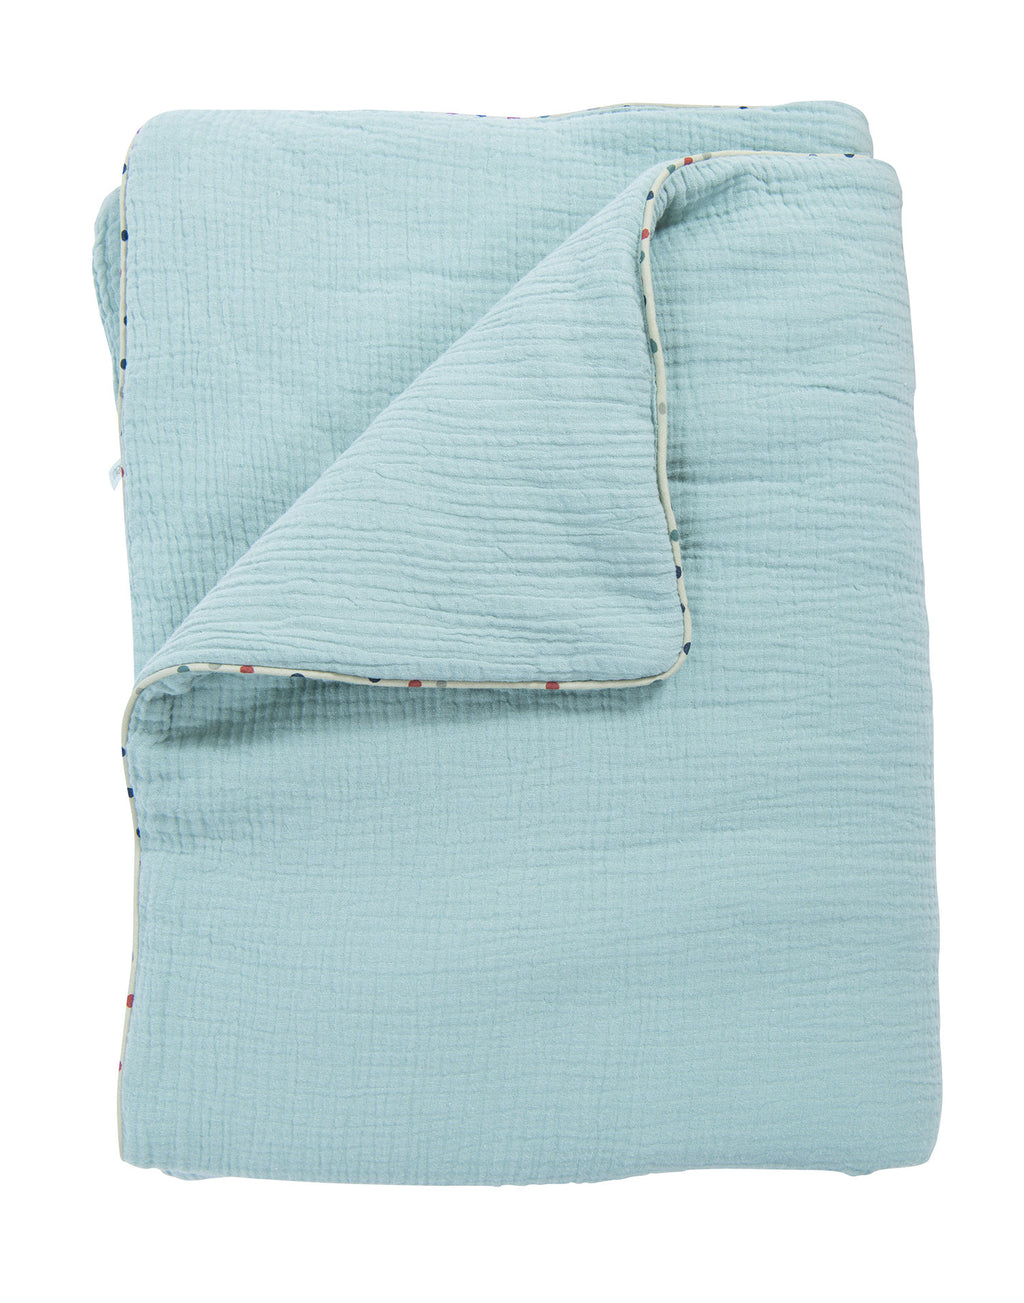 Moulin Roty | 100% Cotton Blanket | Blue | Size: 90cm x 70 cm